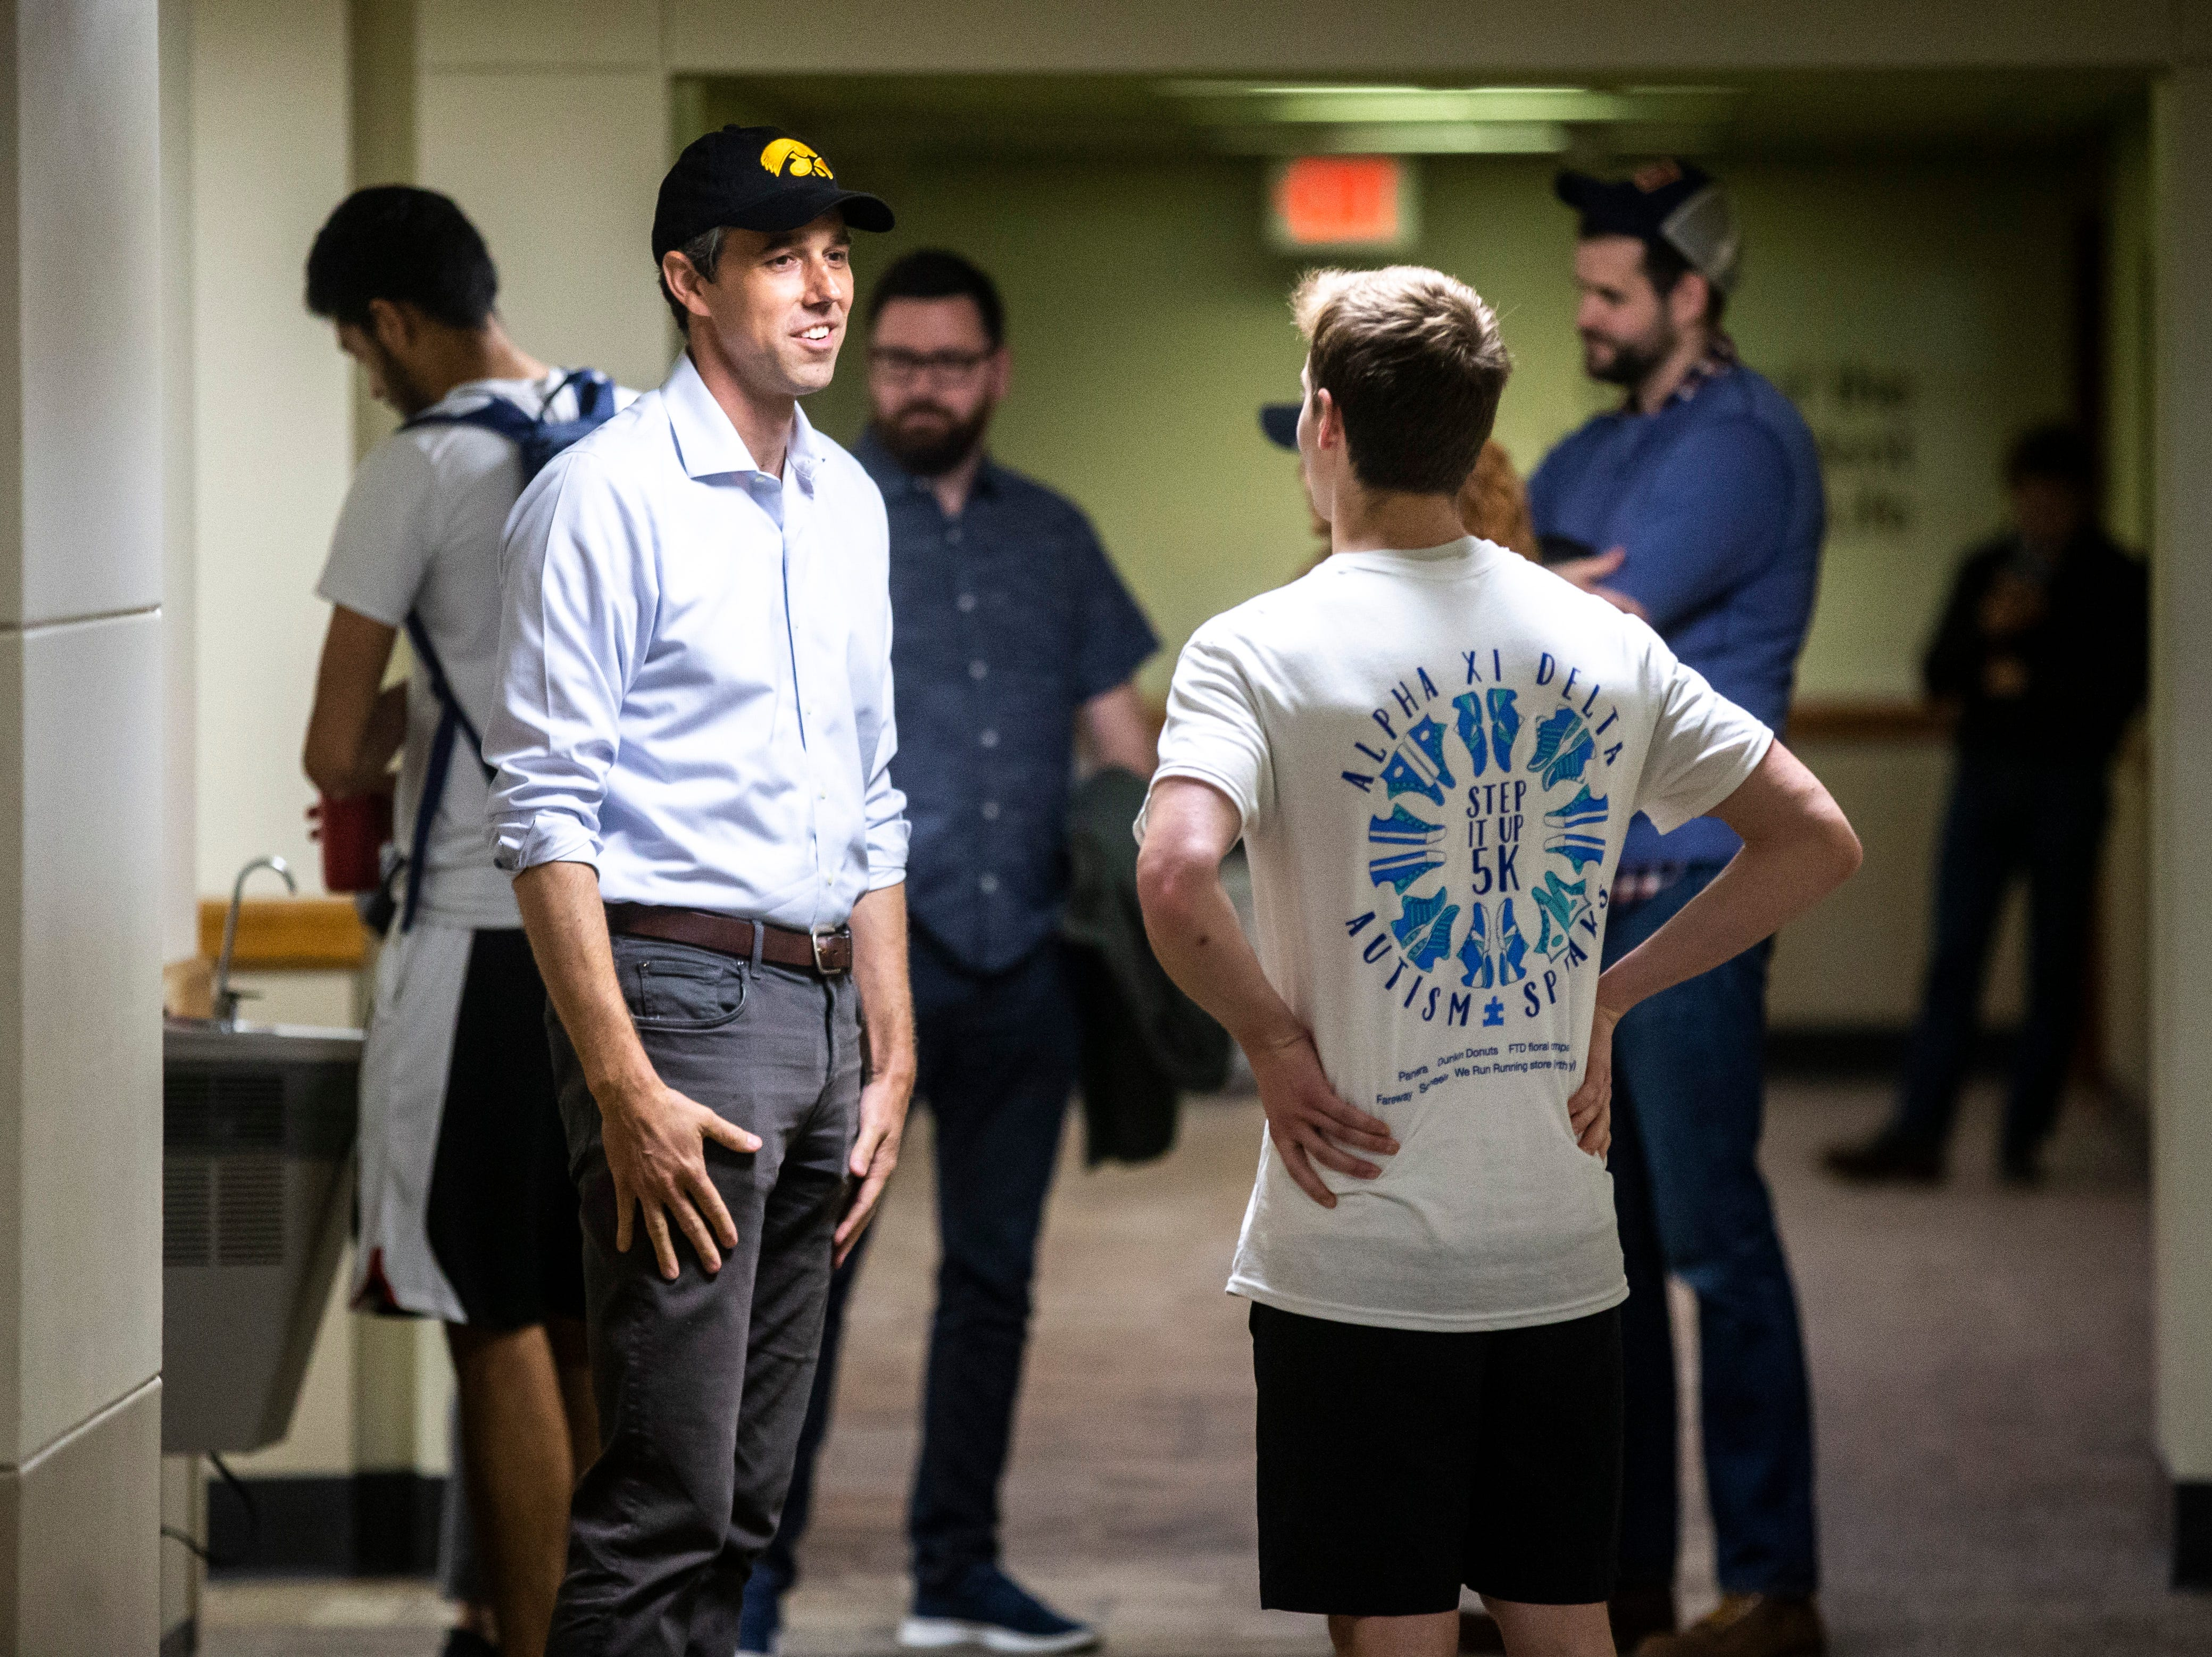 Democratic presidential candidate Beto O'Rourke of El Paso, Texas, talks with University of Iowa student Matthew Rowland after the two met in the restroom before a town hall event on Sunday, April 7, 2019, in the second floor ballroom at the Iowa Memorial Union on the University of Iowa campus in Iowa City, Iowa.